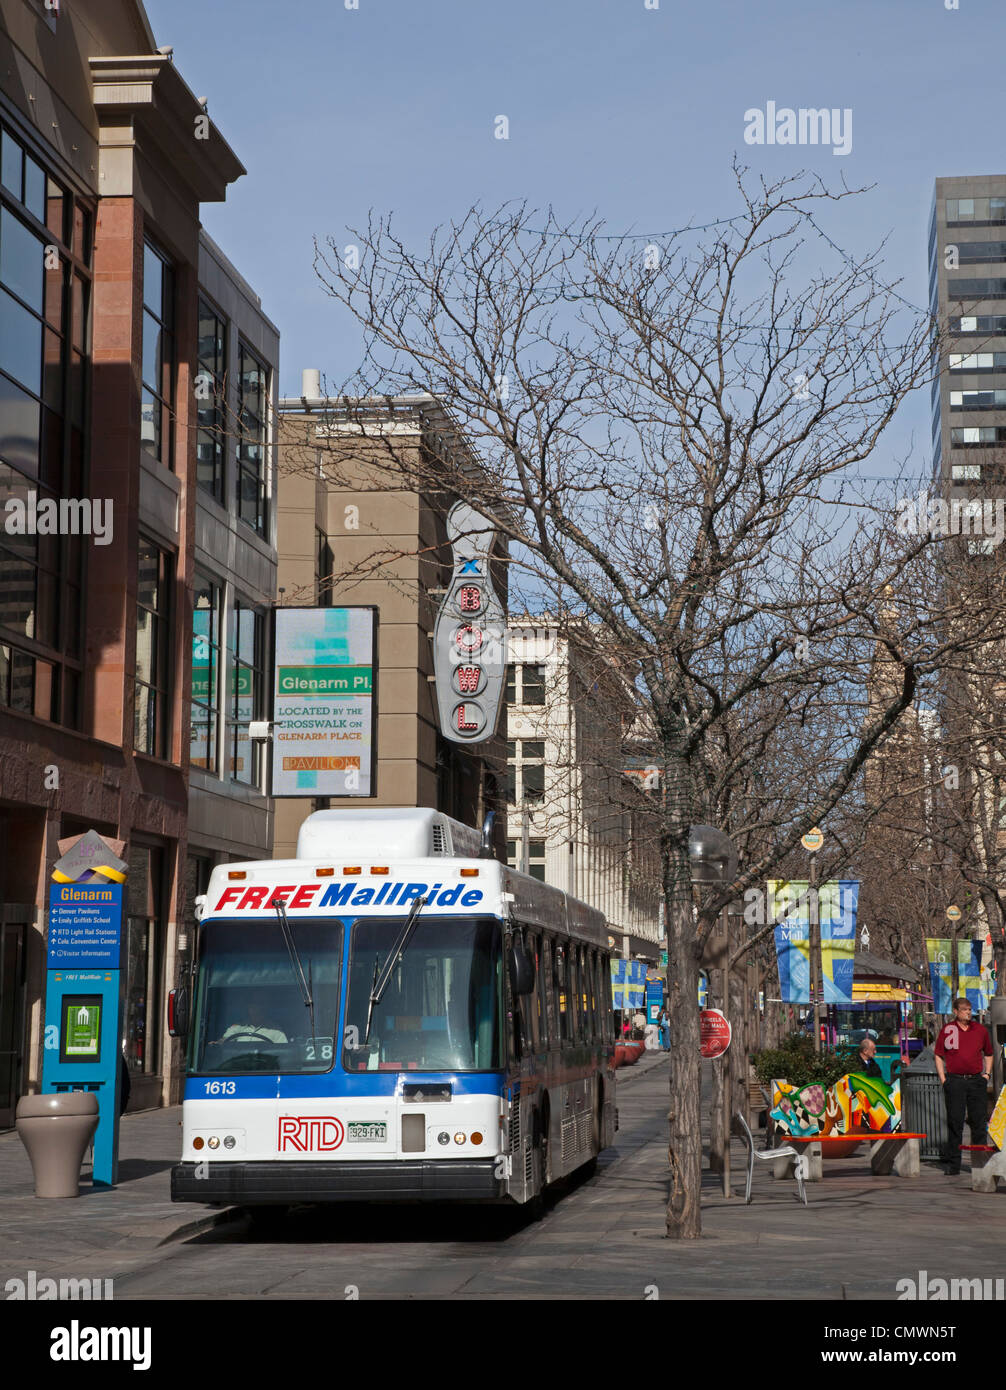 Denver, Colorado - The 16th Street pedestrian mall. A free shuttle bus runs frequently along the length of the mall. - Stock Image